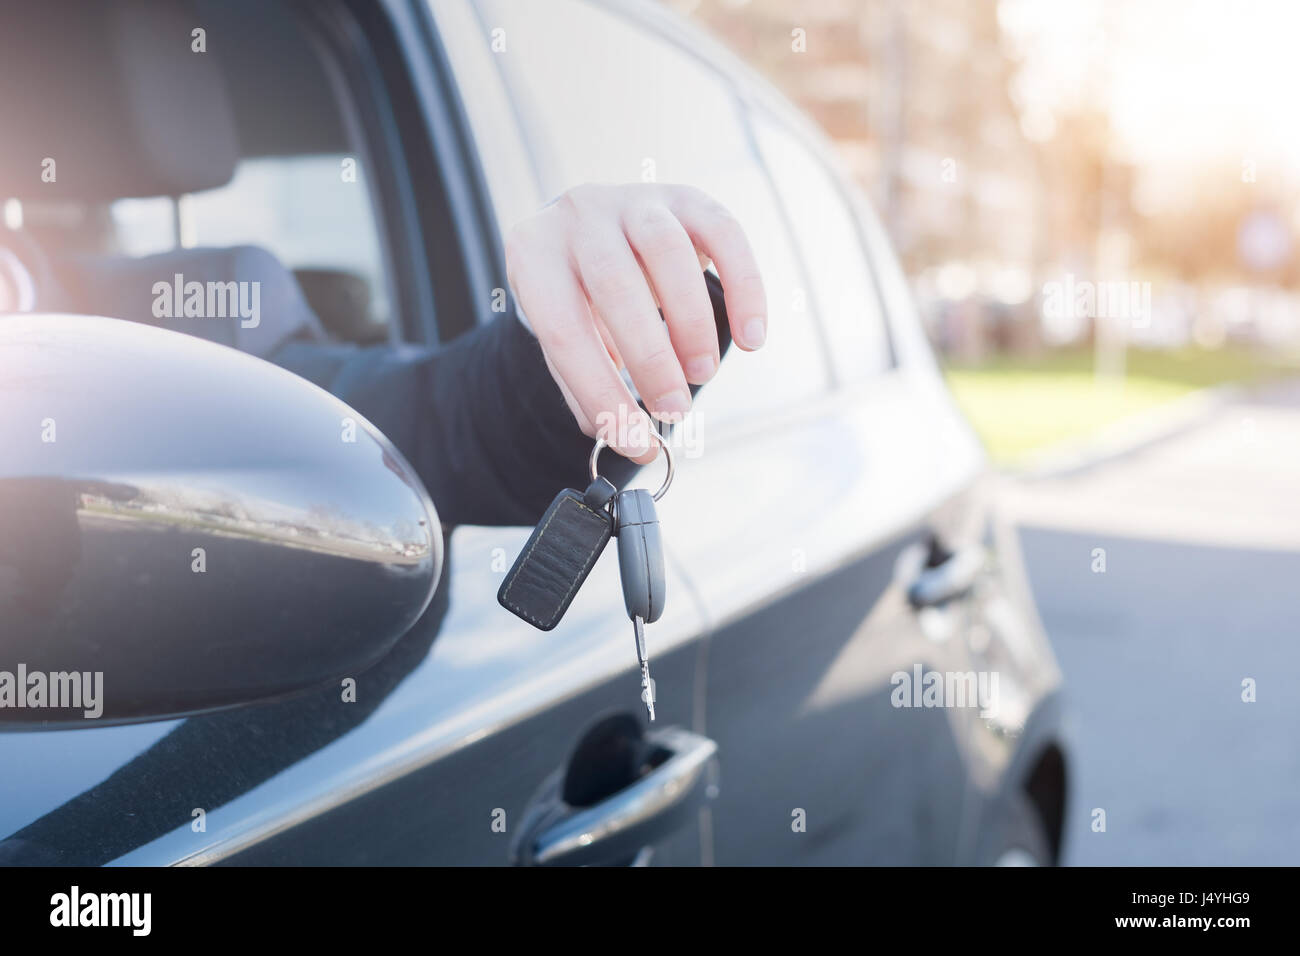 Man seated in his car holding the key - Stock Image